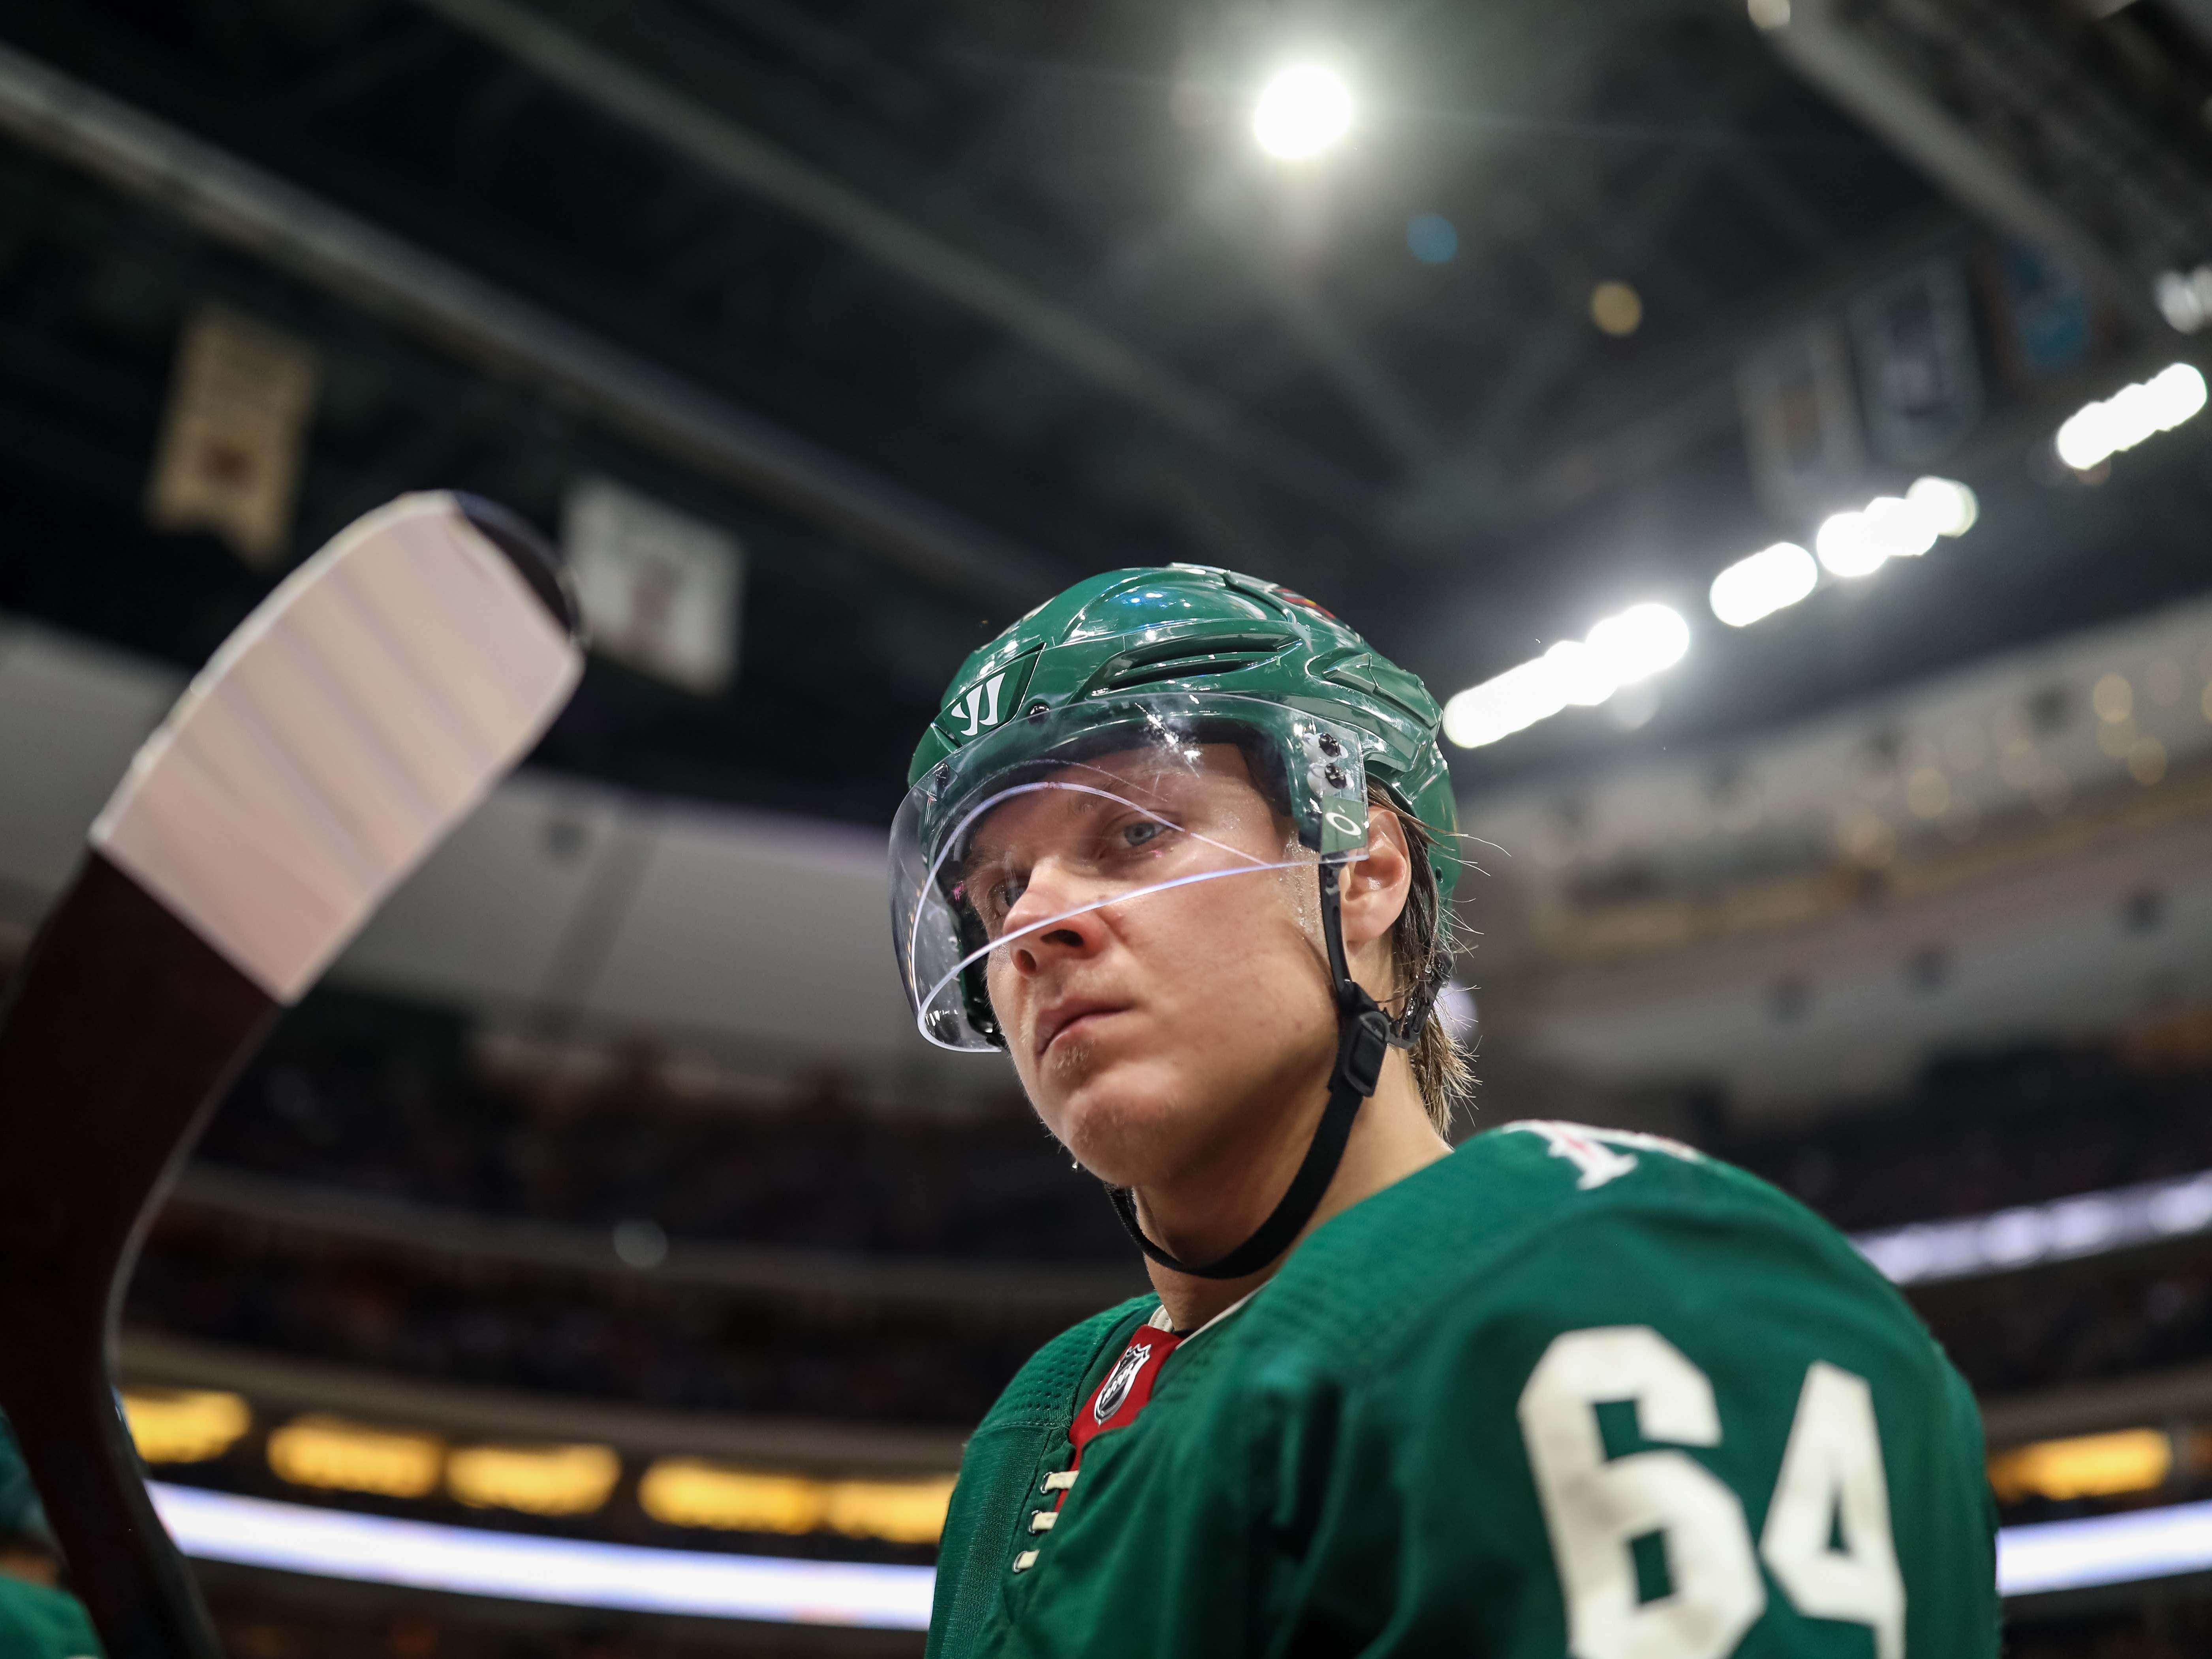 64. Mikael Granlund (2012 to present)